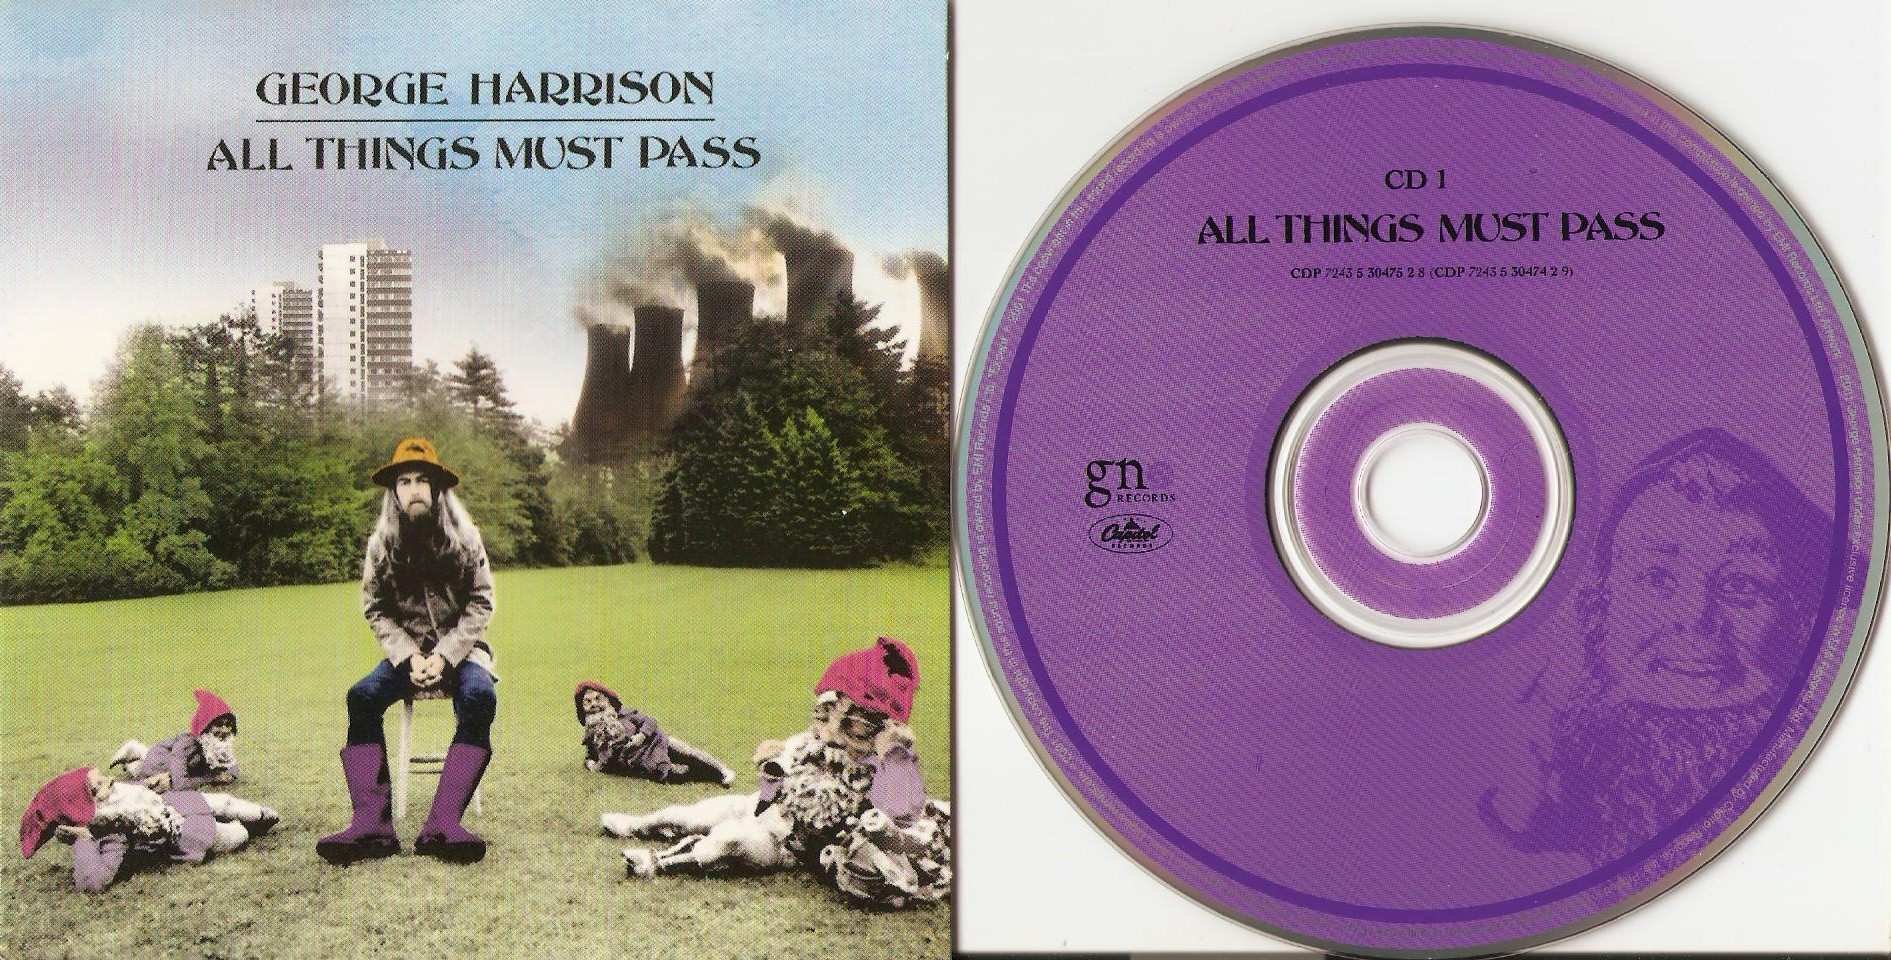 All Things Must Pass Cd Box Set Disc 1